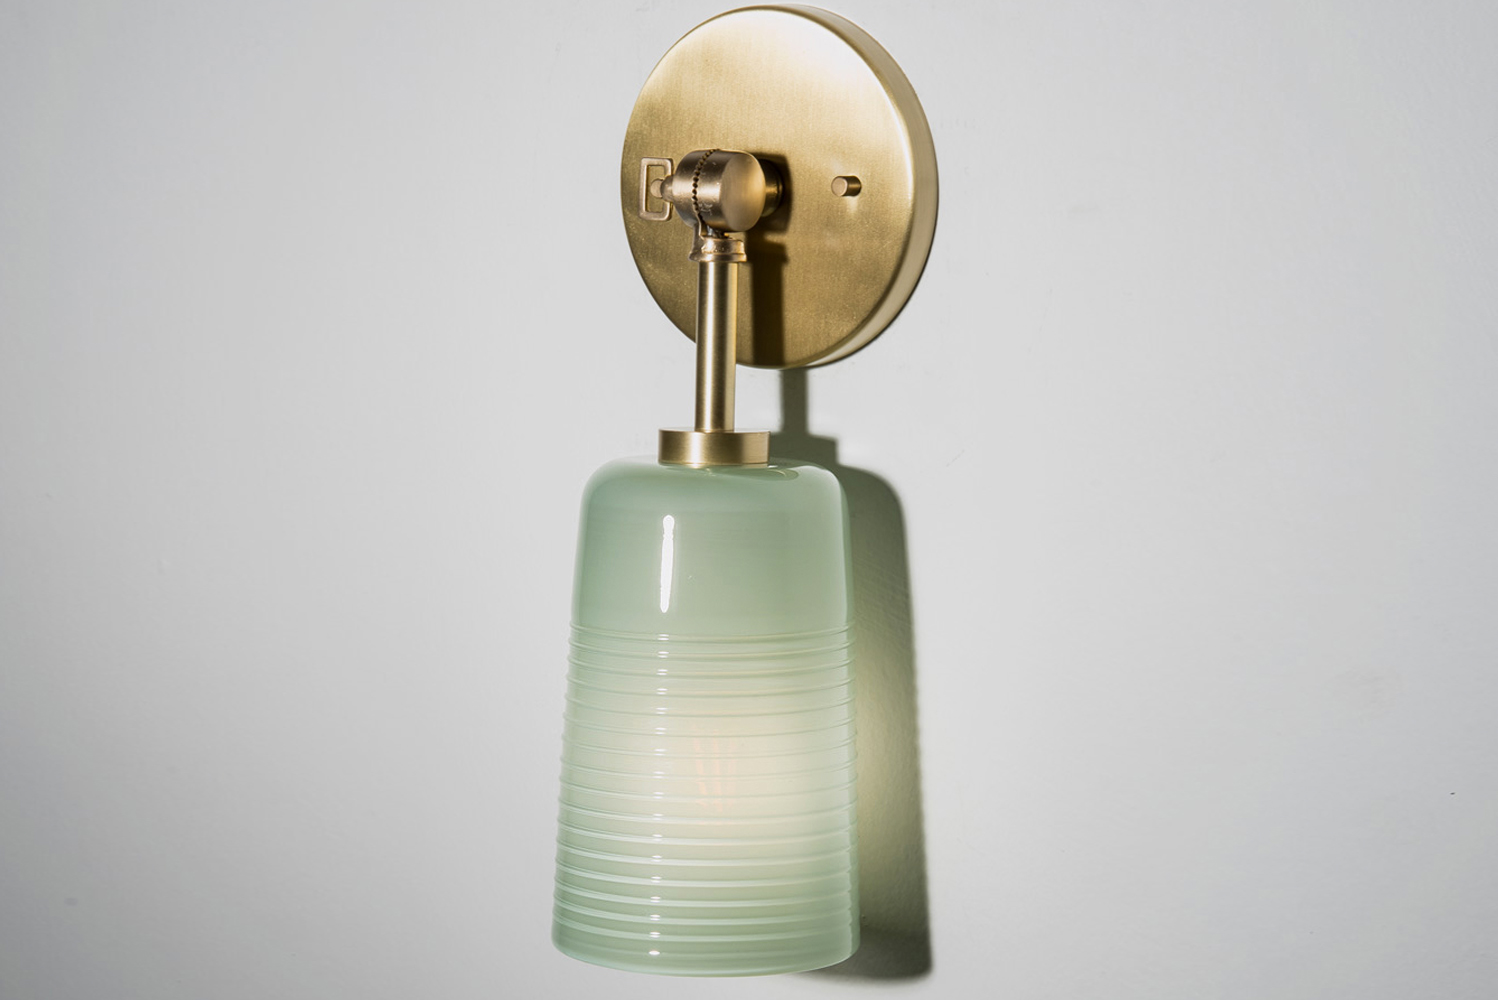 The cone shape diffuser in half-Wrap pattern has a clear-color glass, with a round backplate with brushed brass finish.